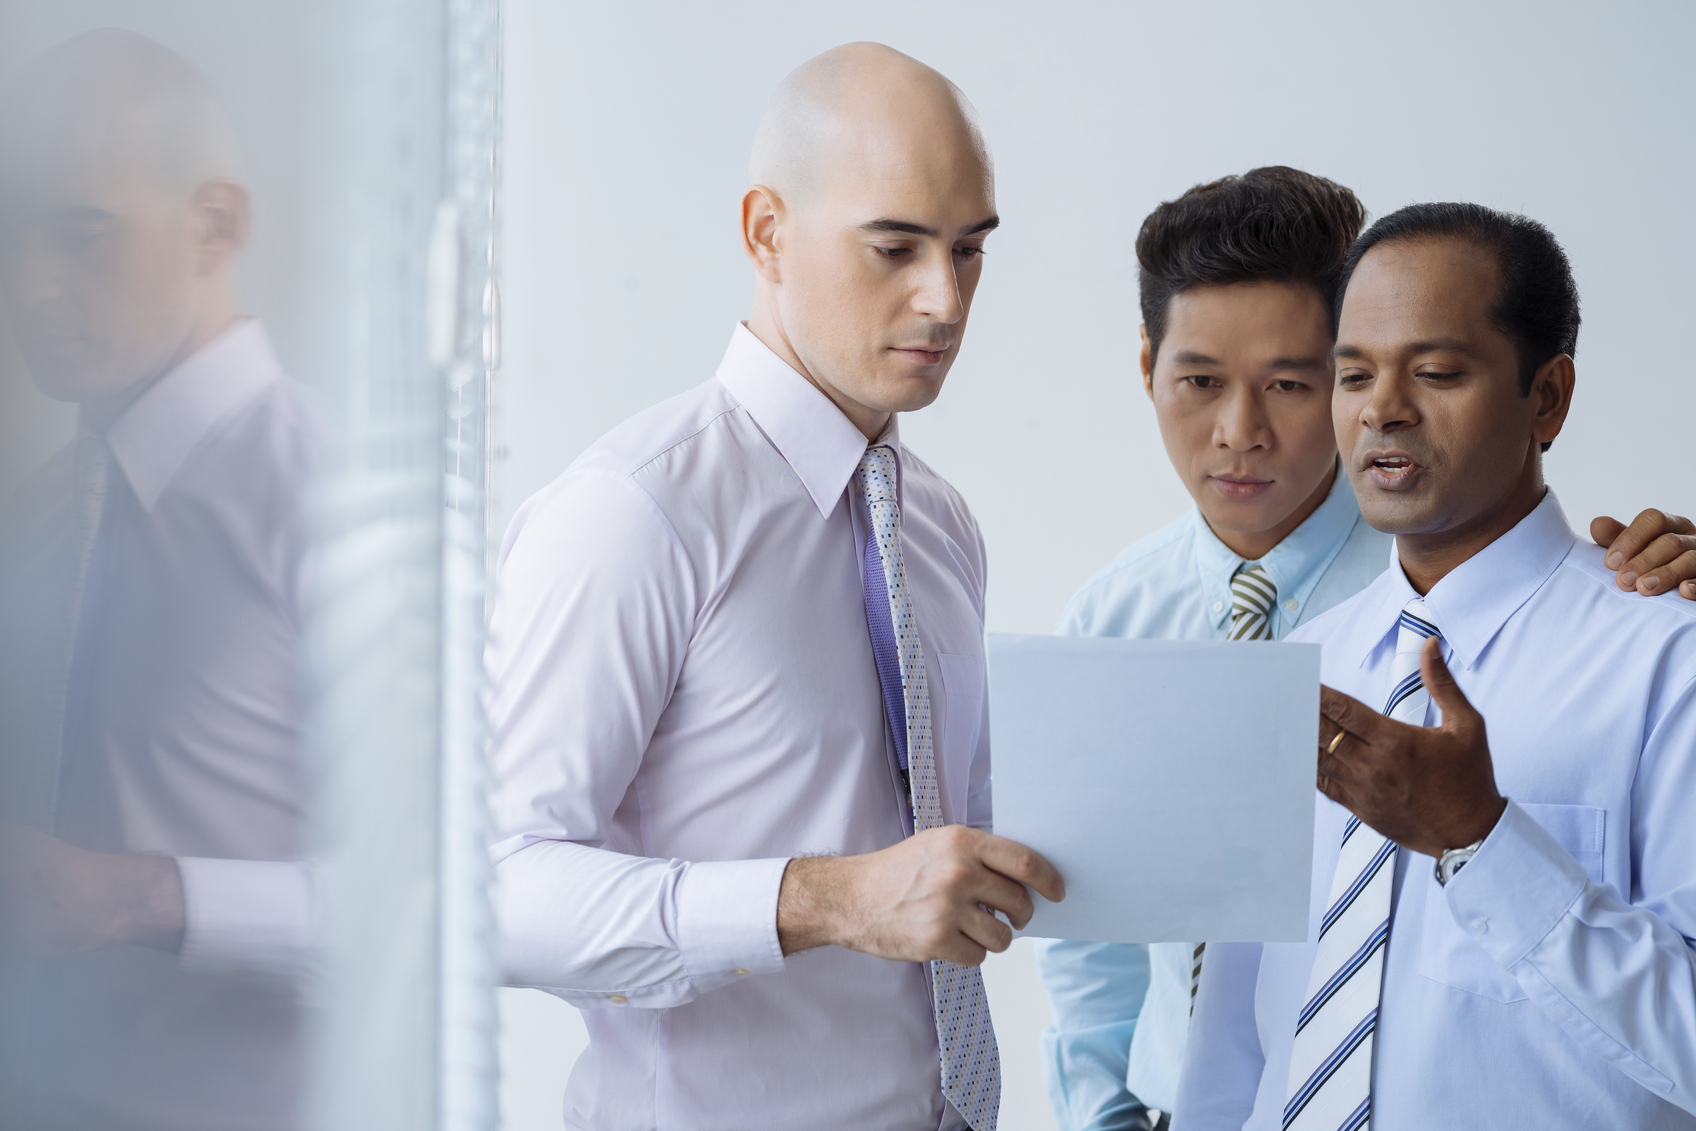 stock photo of three businessmen looking at a piece of paper